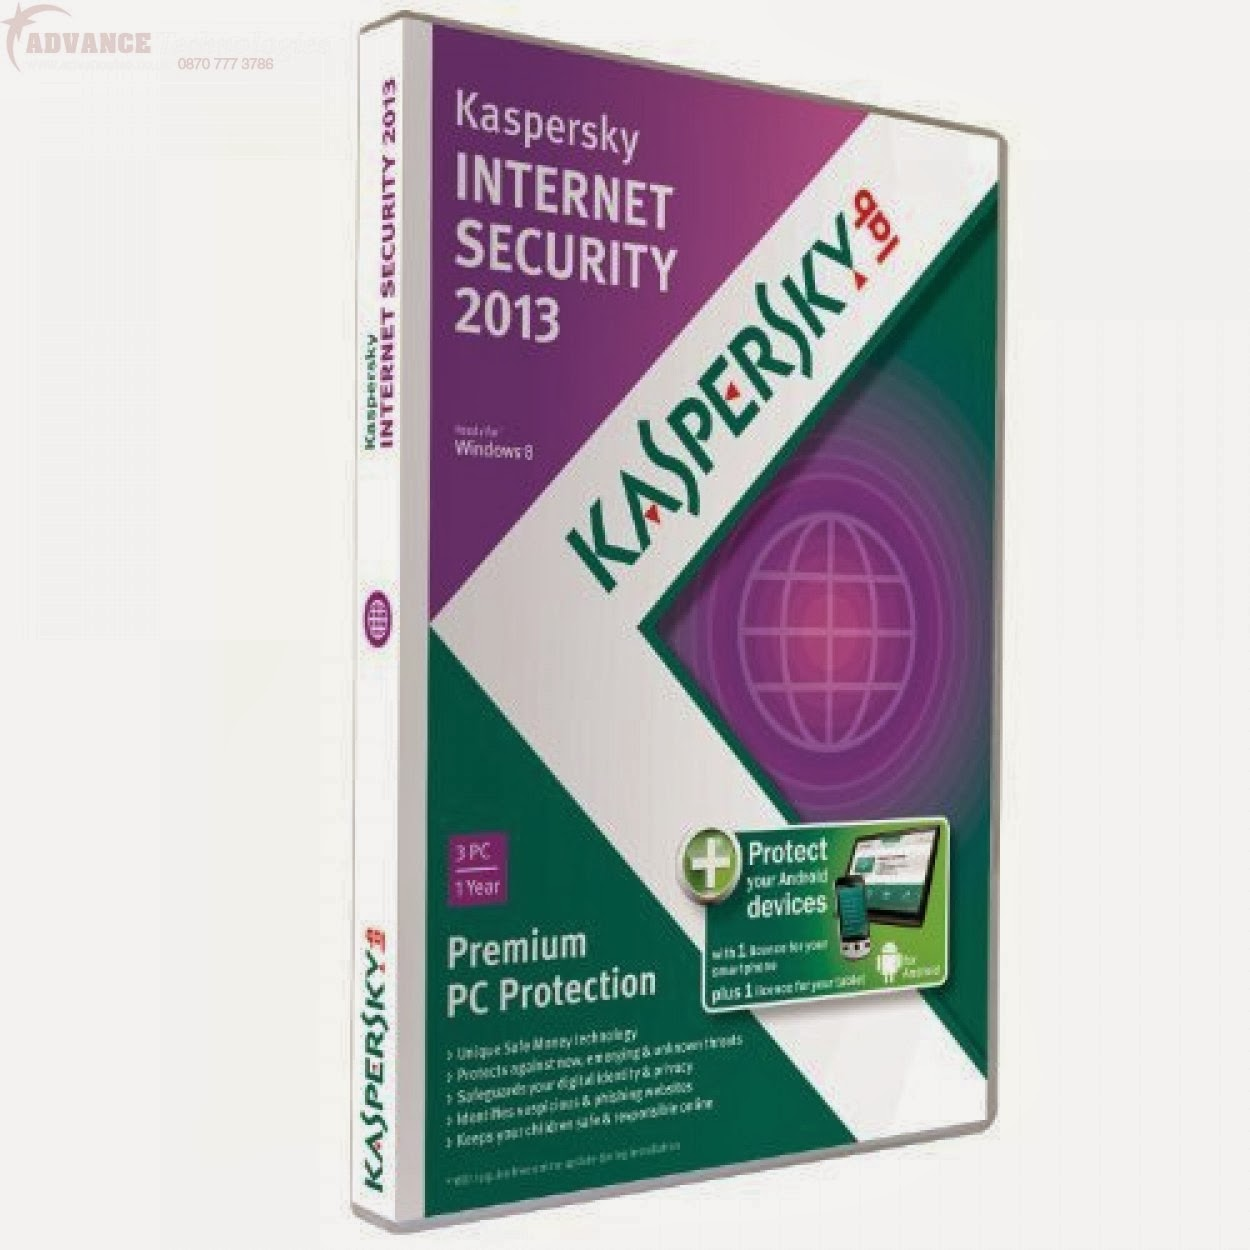 Kaspersky internet security 8 0 0 357 final 2017 new serials included0